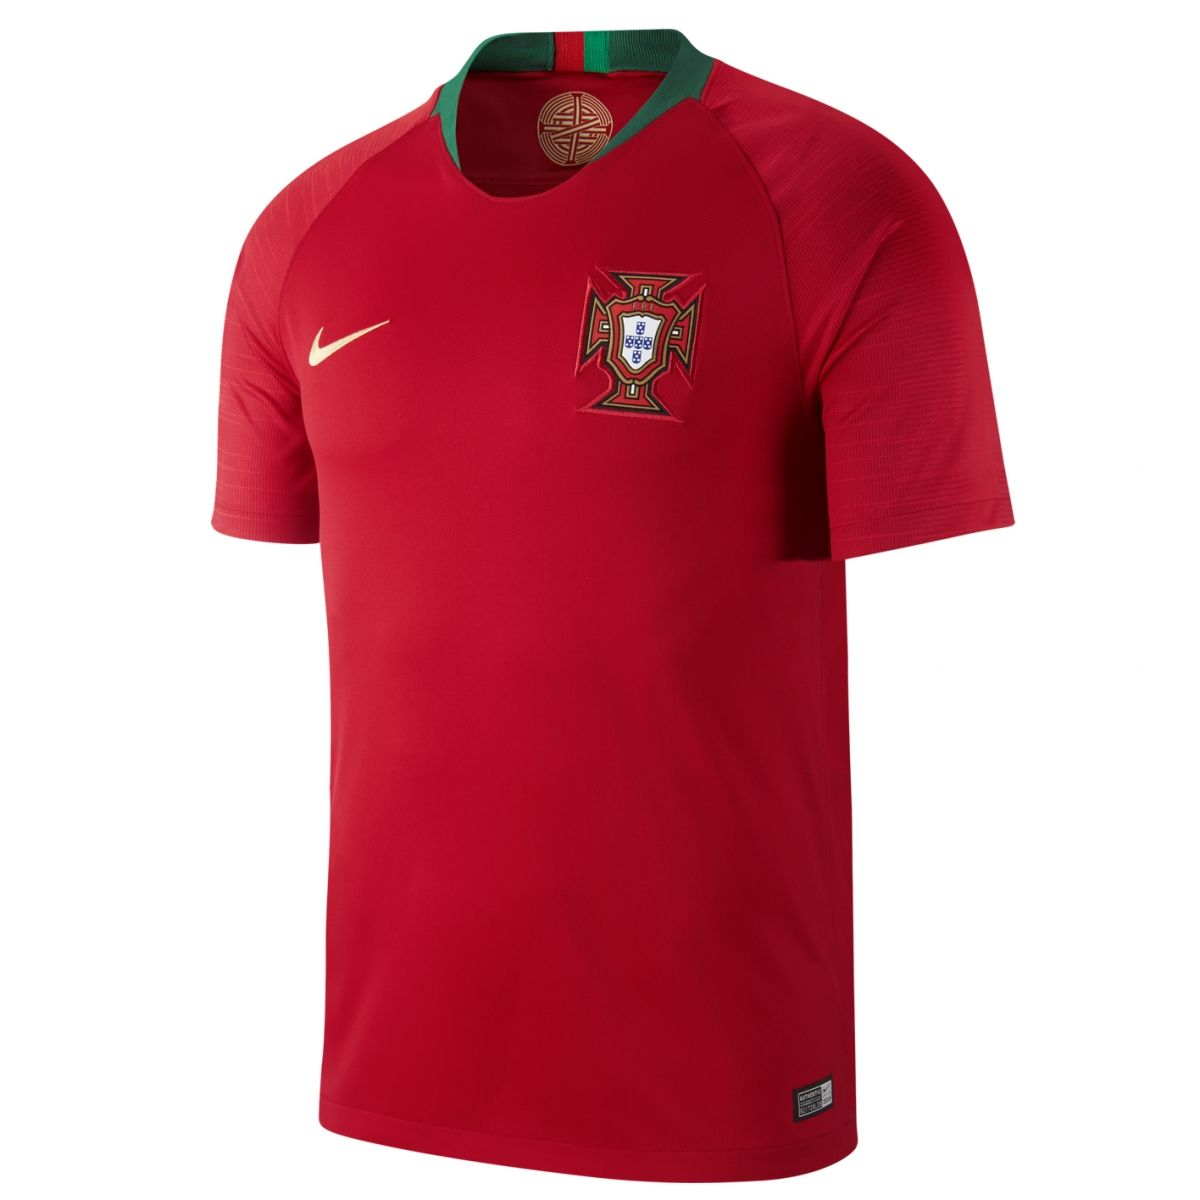 moins cher 7db24 367fb Type Shirts Nike Portugal Stadium Home T-Shirt